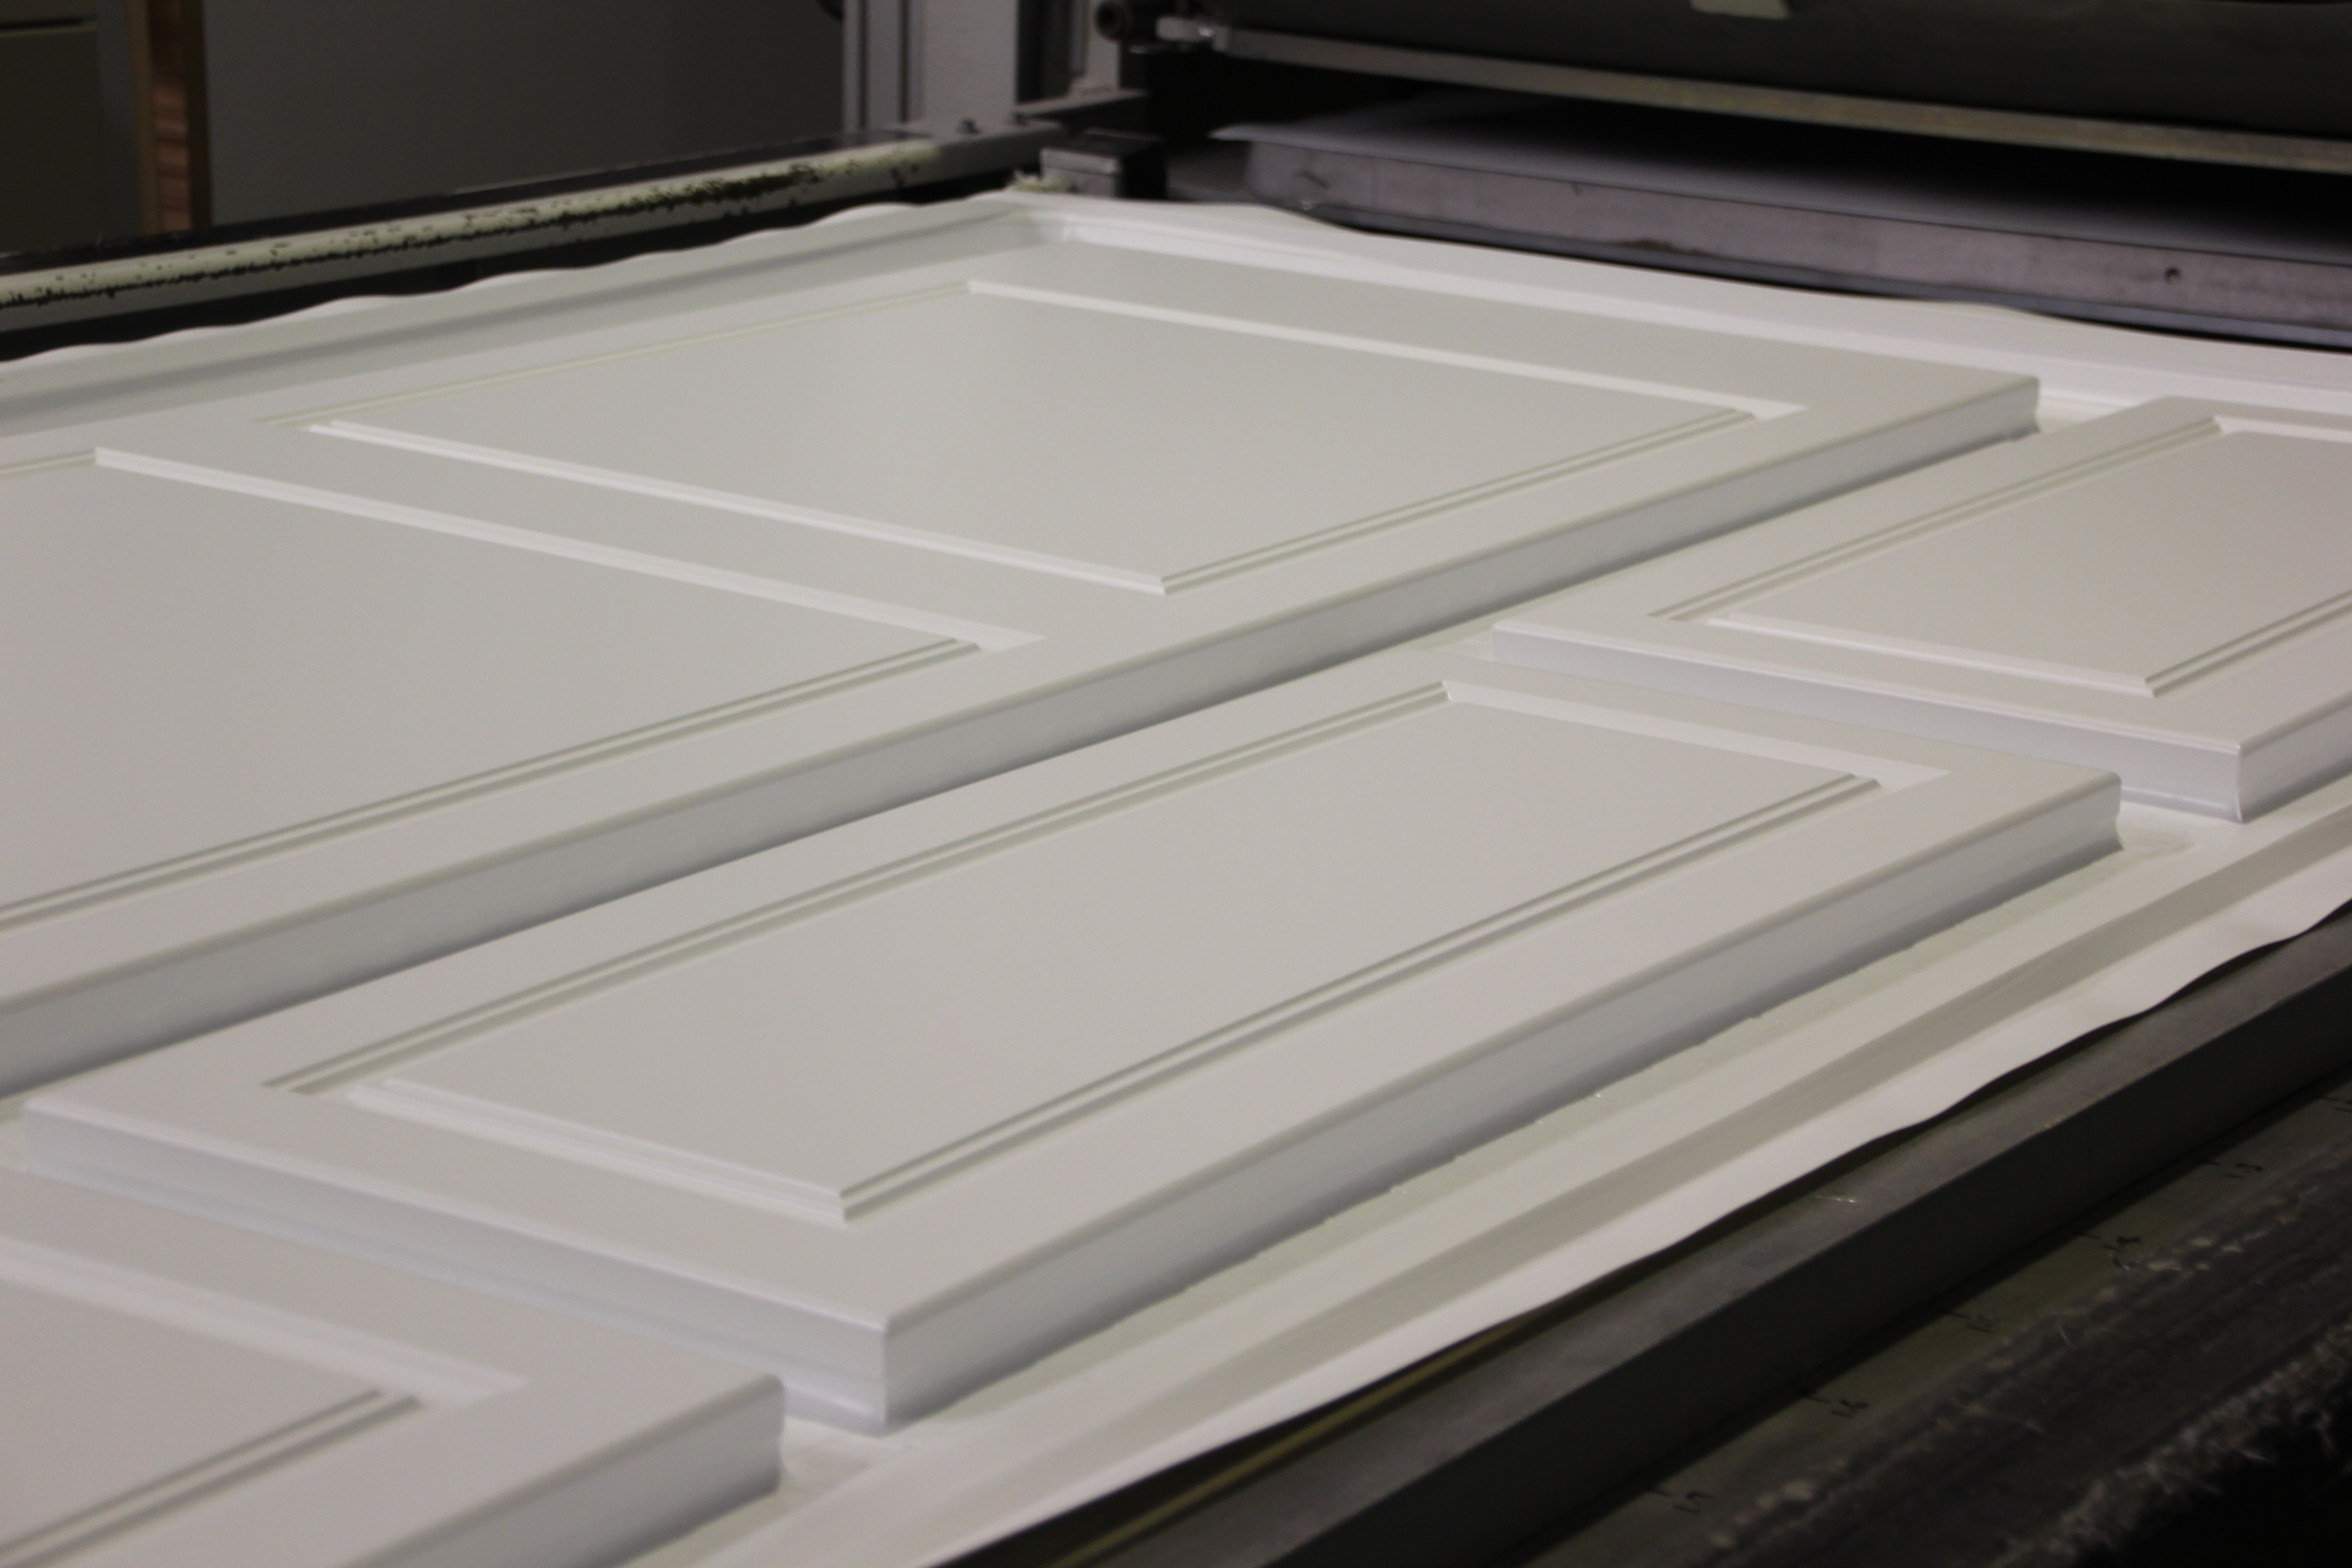 Tray full of just laminated wrapped doors.